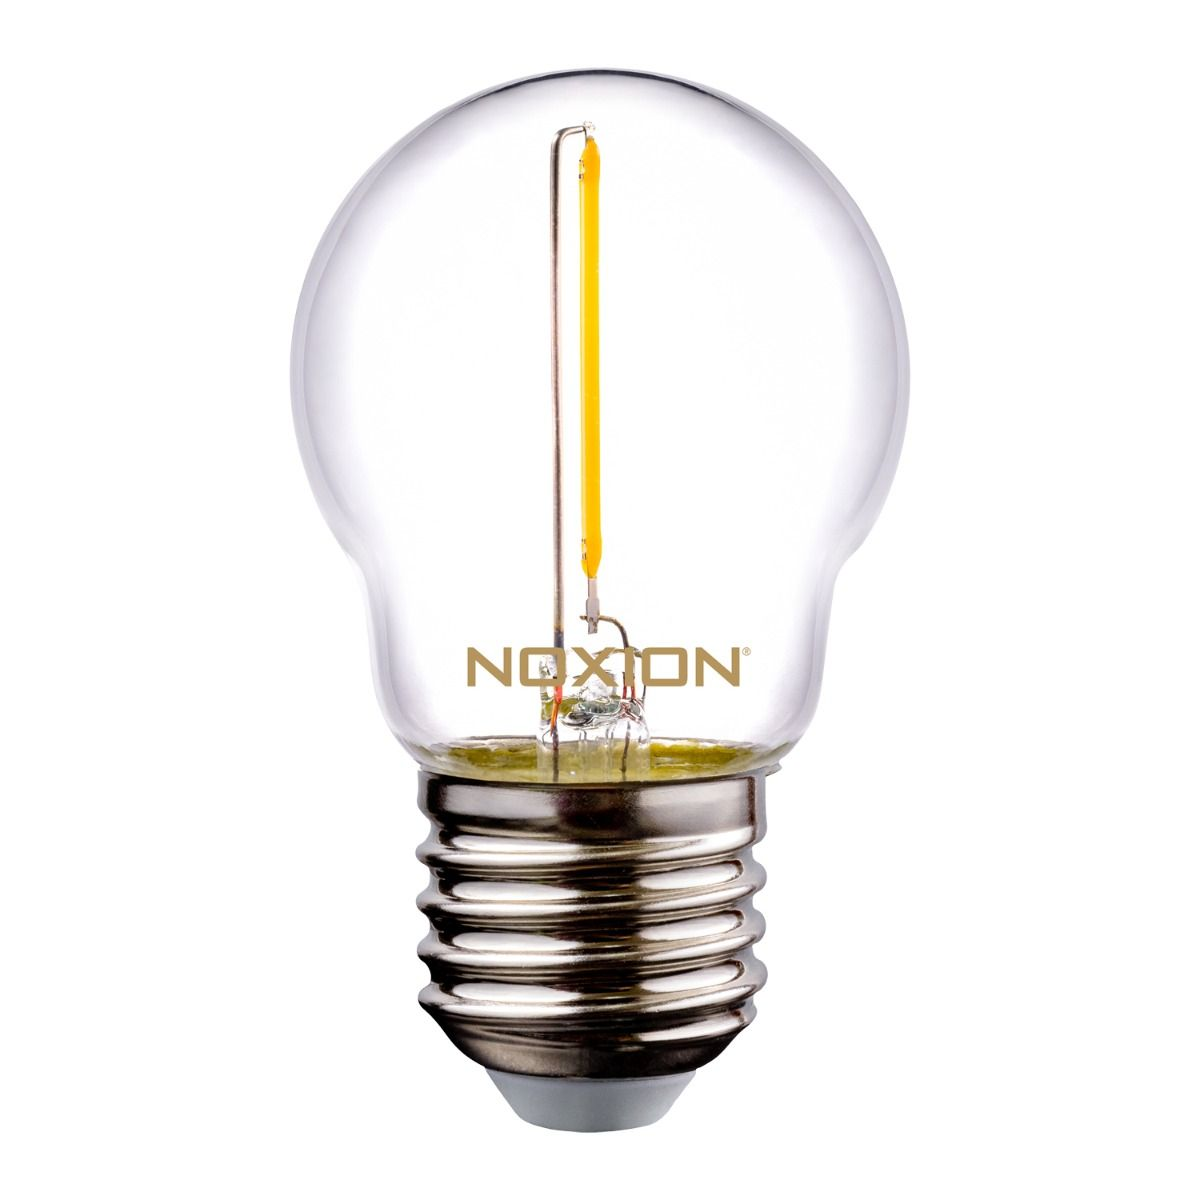 Noxion Lucent Filament LED Lustre P45 E27 220-240V 1.4W 136LM CRI80 2700K ND (15W eqv.)